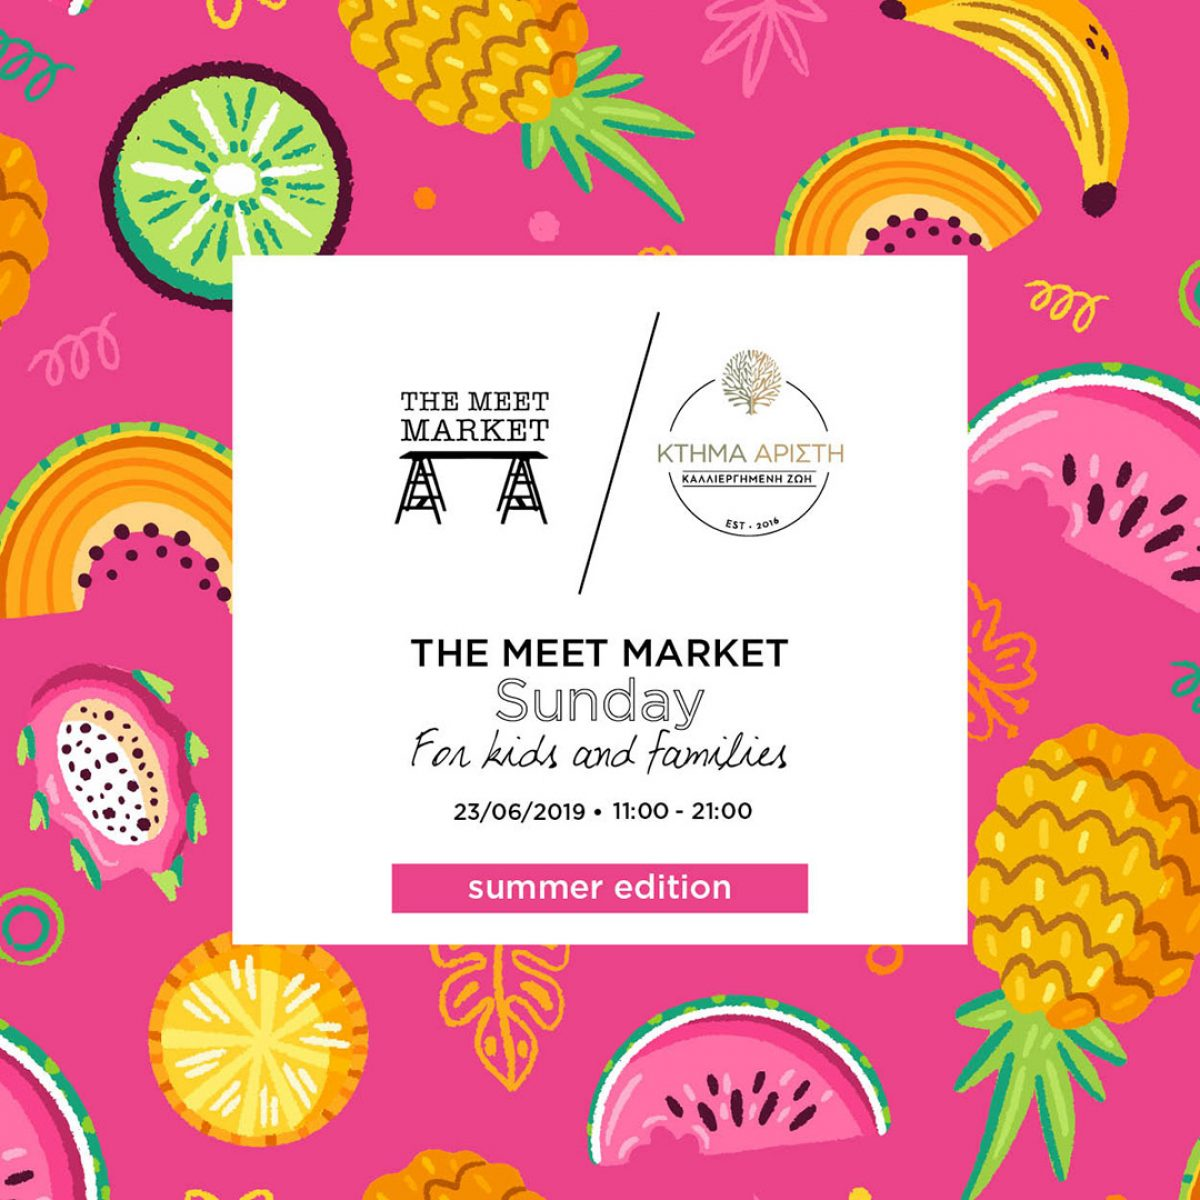 The Meet Market Sunday for Kids and Families Κυριακή 23 Ιουνίου 2019